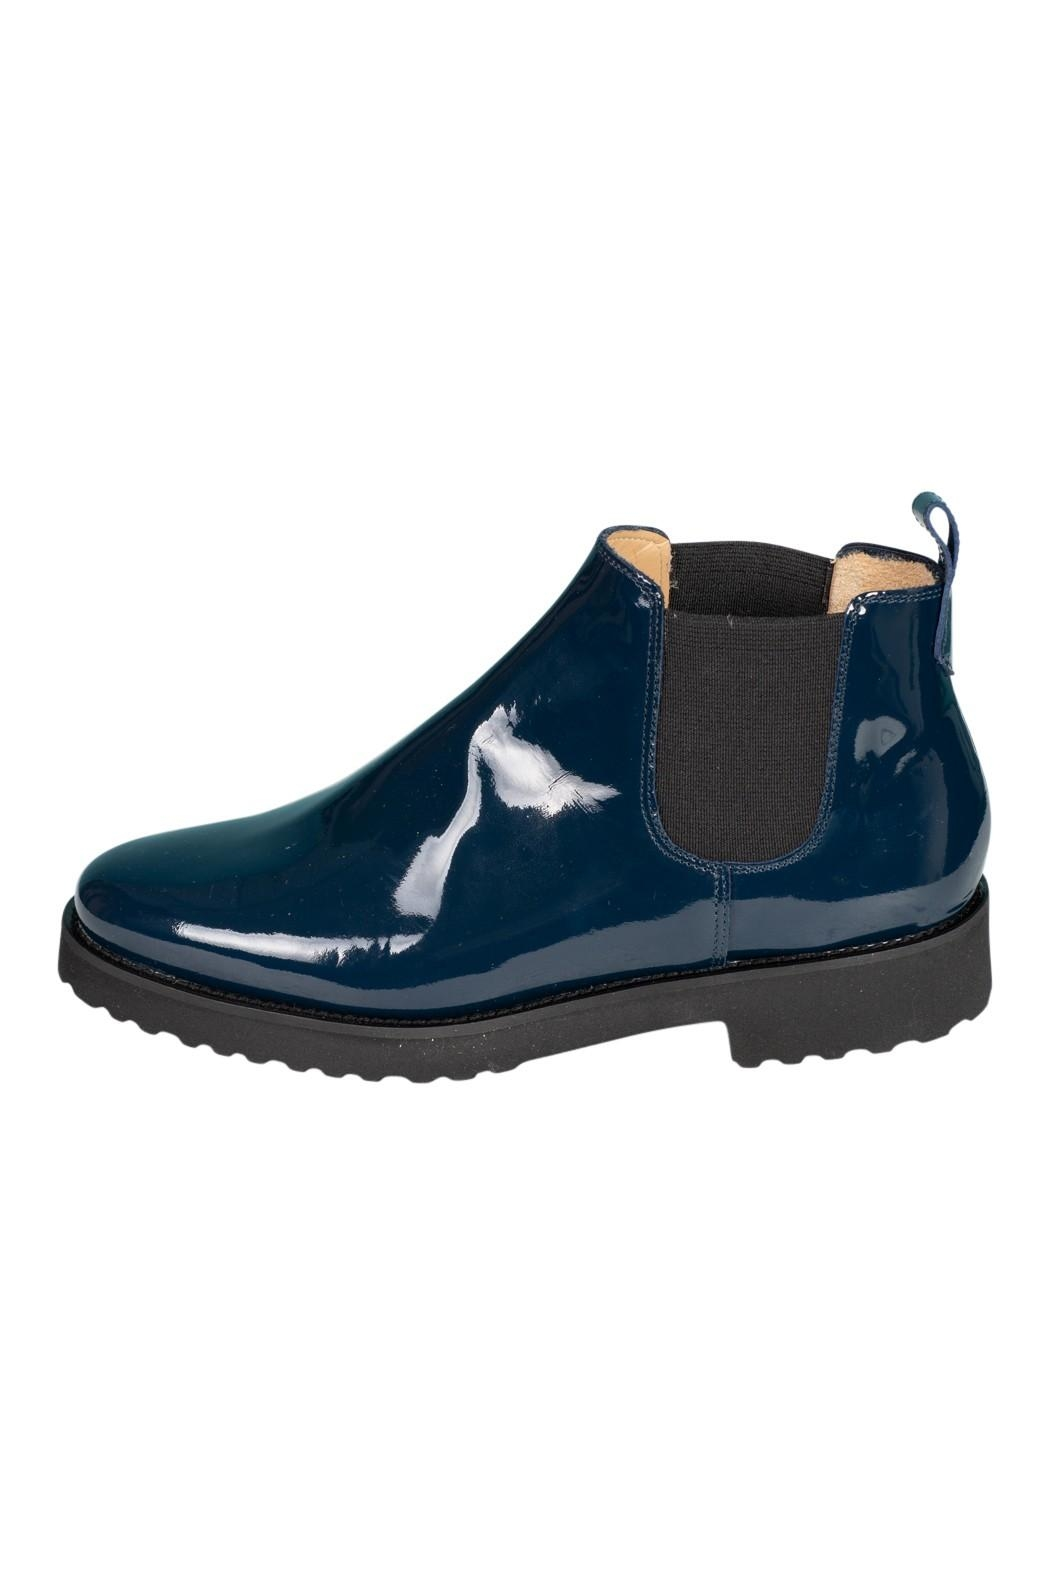 Pascucci Blue Patent-Leather Ankle-Boots - Main Image